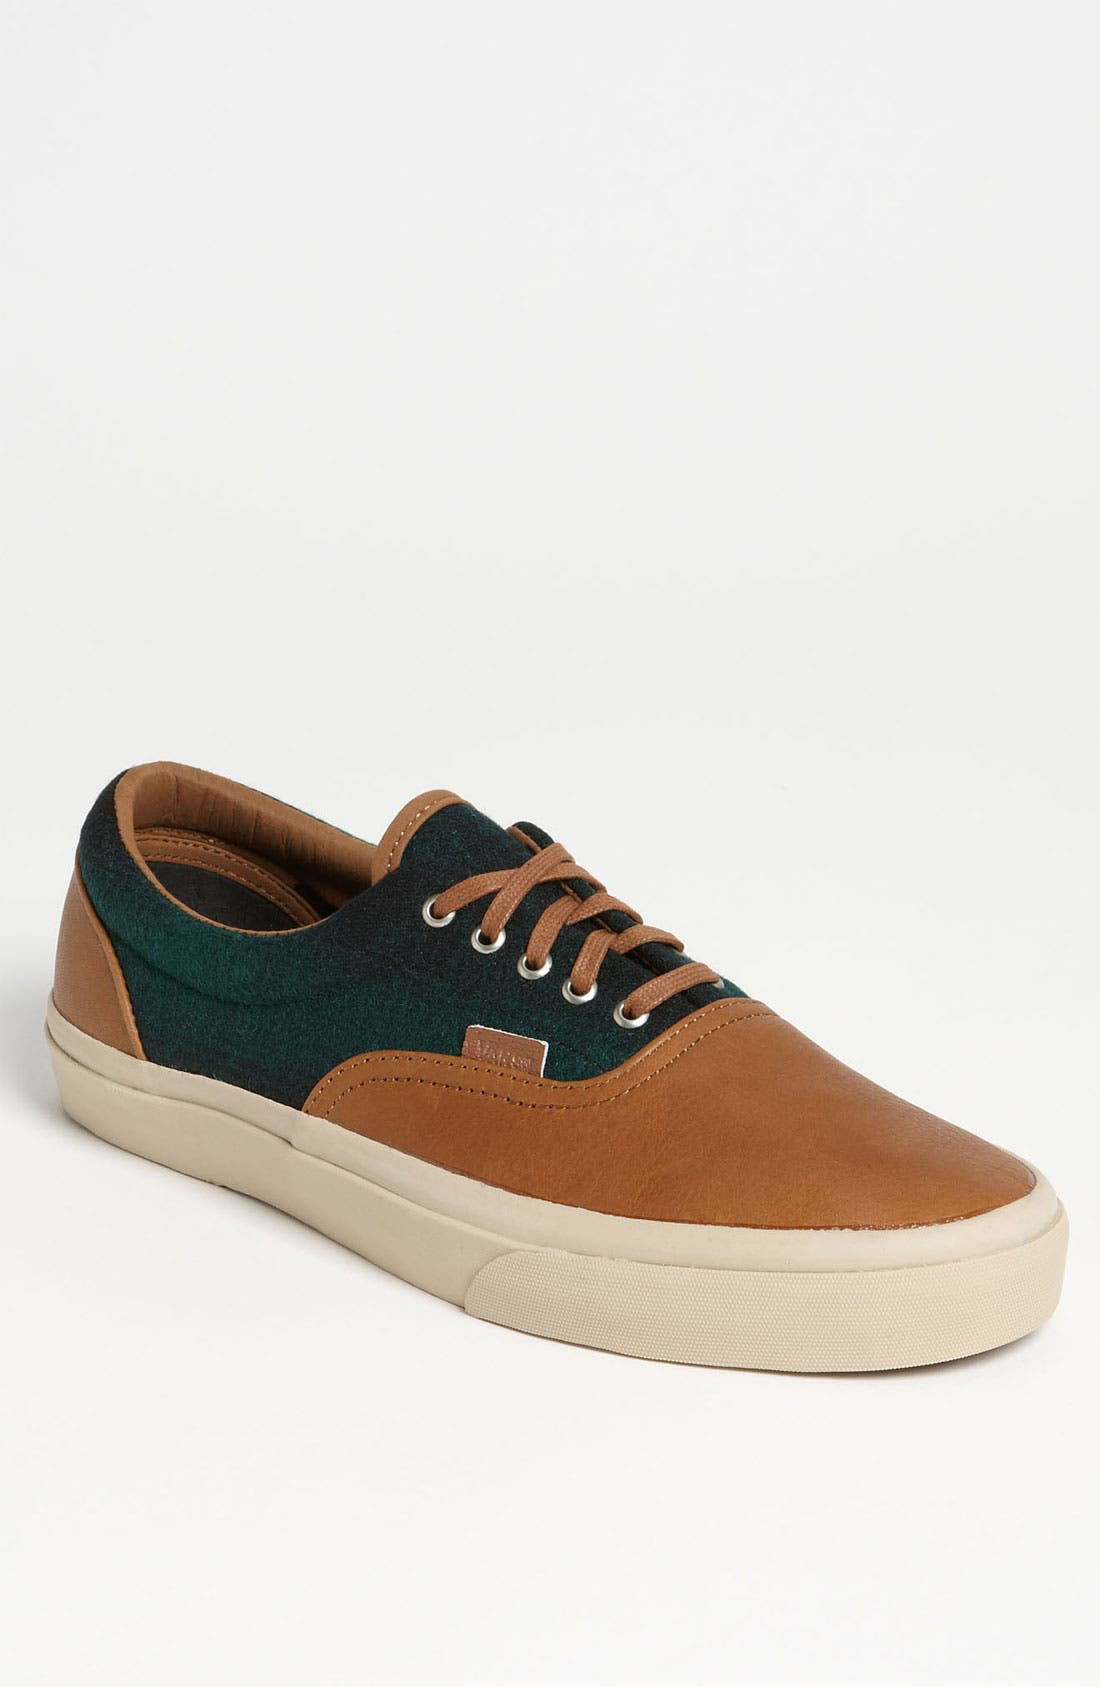 Main Image - Vans 'Cali - Era' Sneaker (Men)